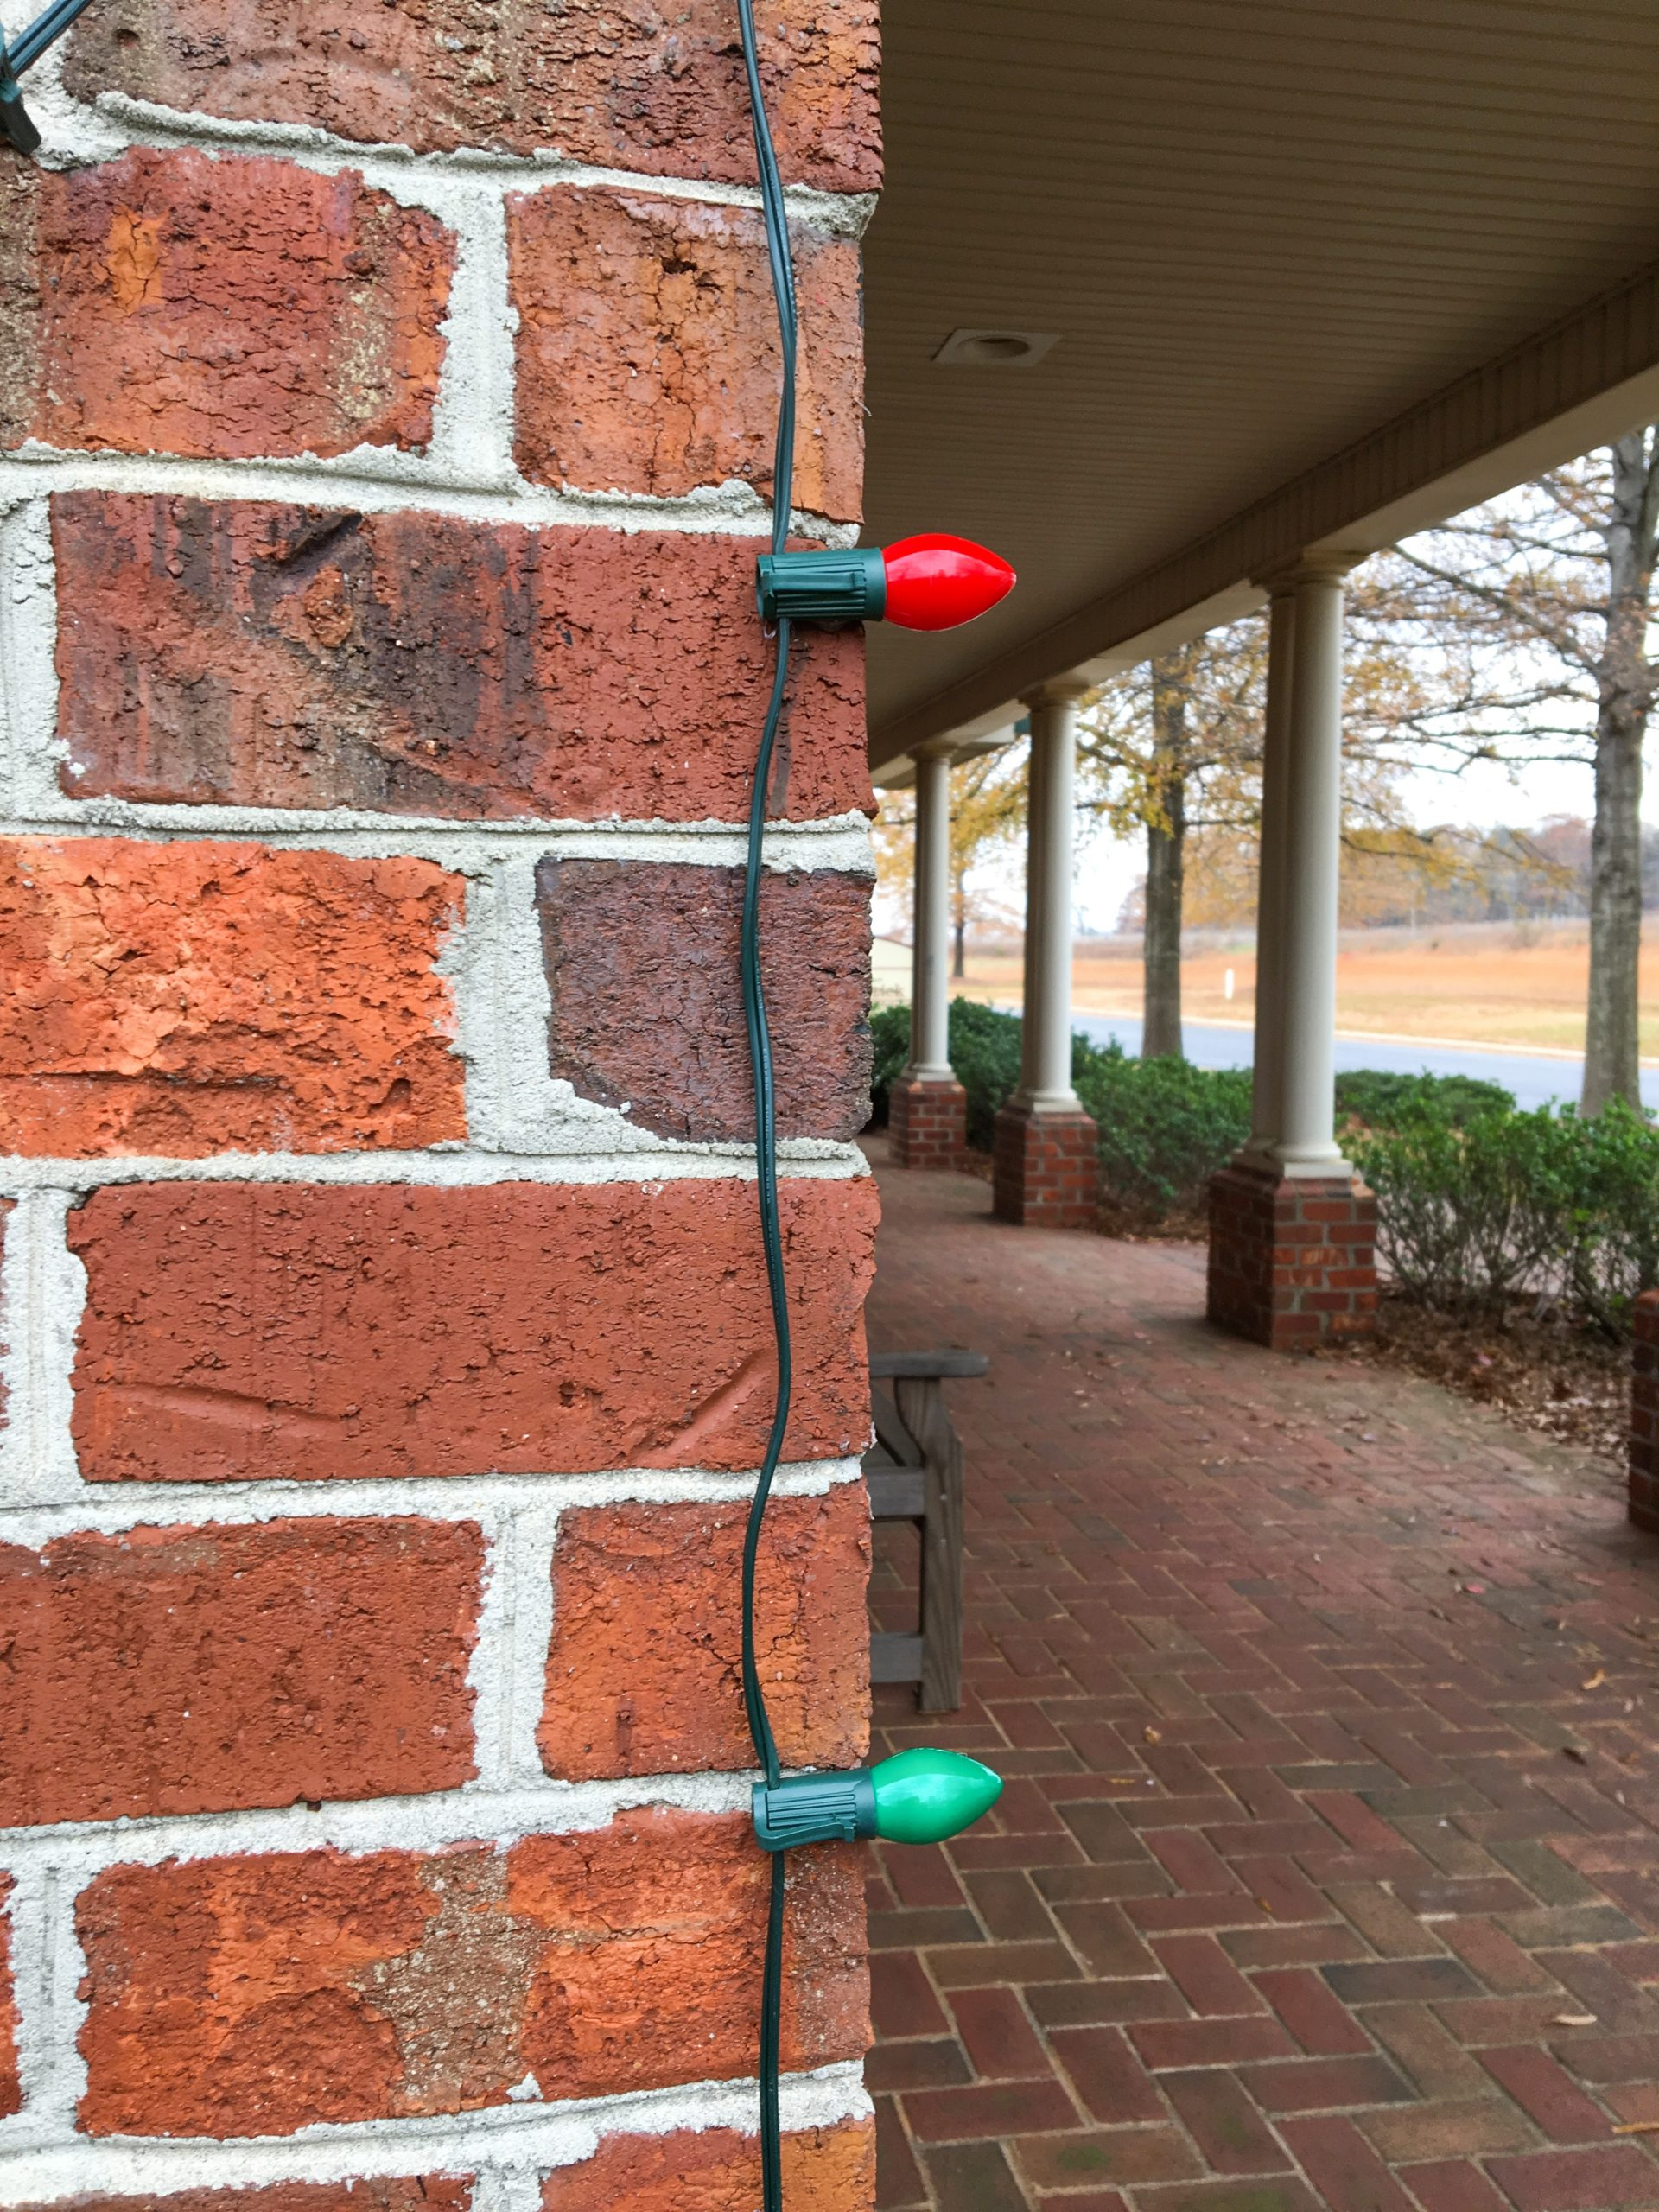 How to hang Christmas lights on brick.